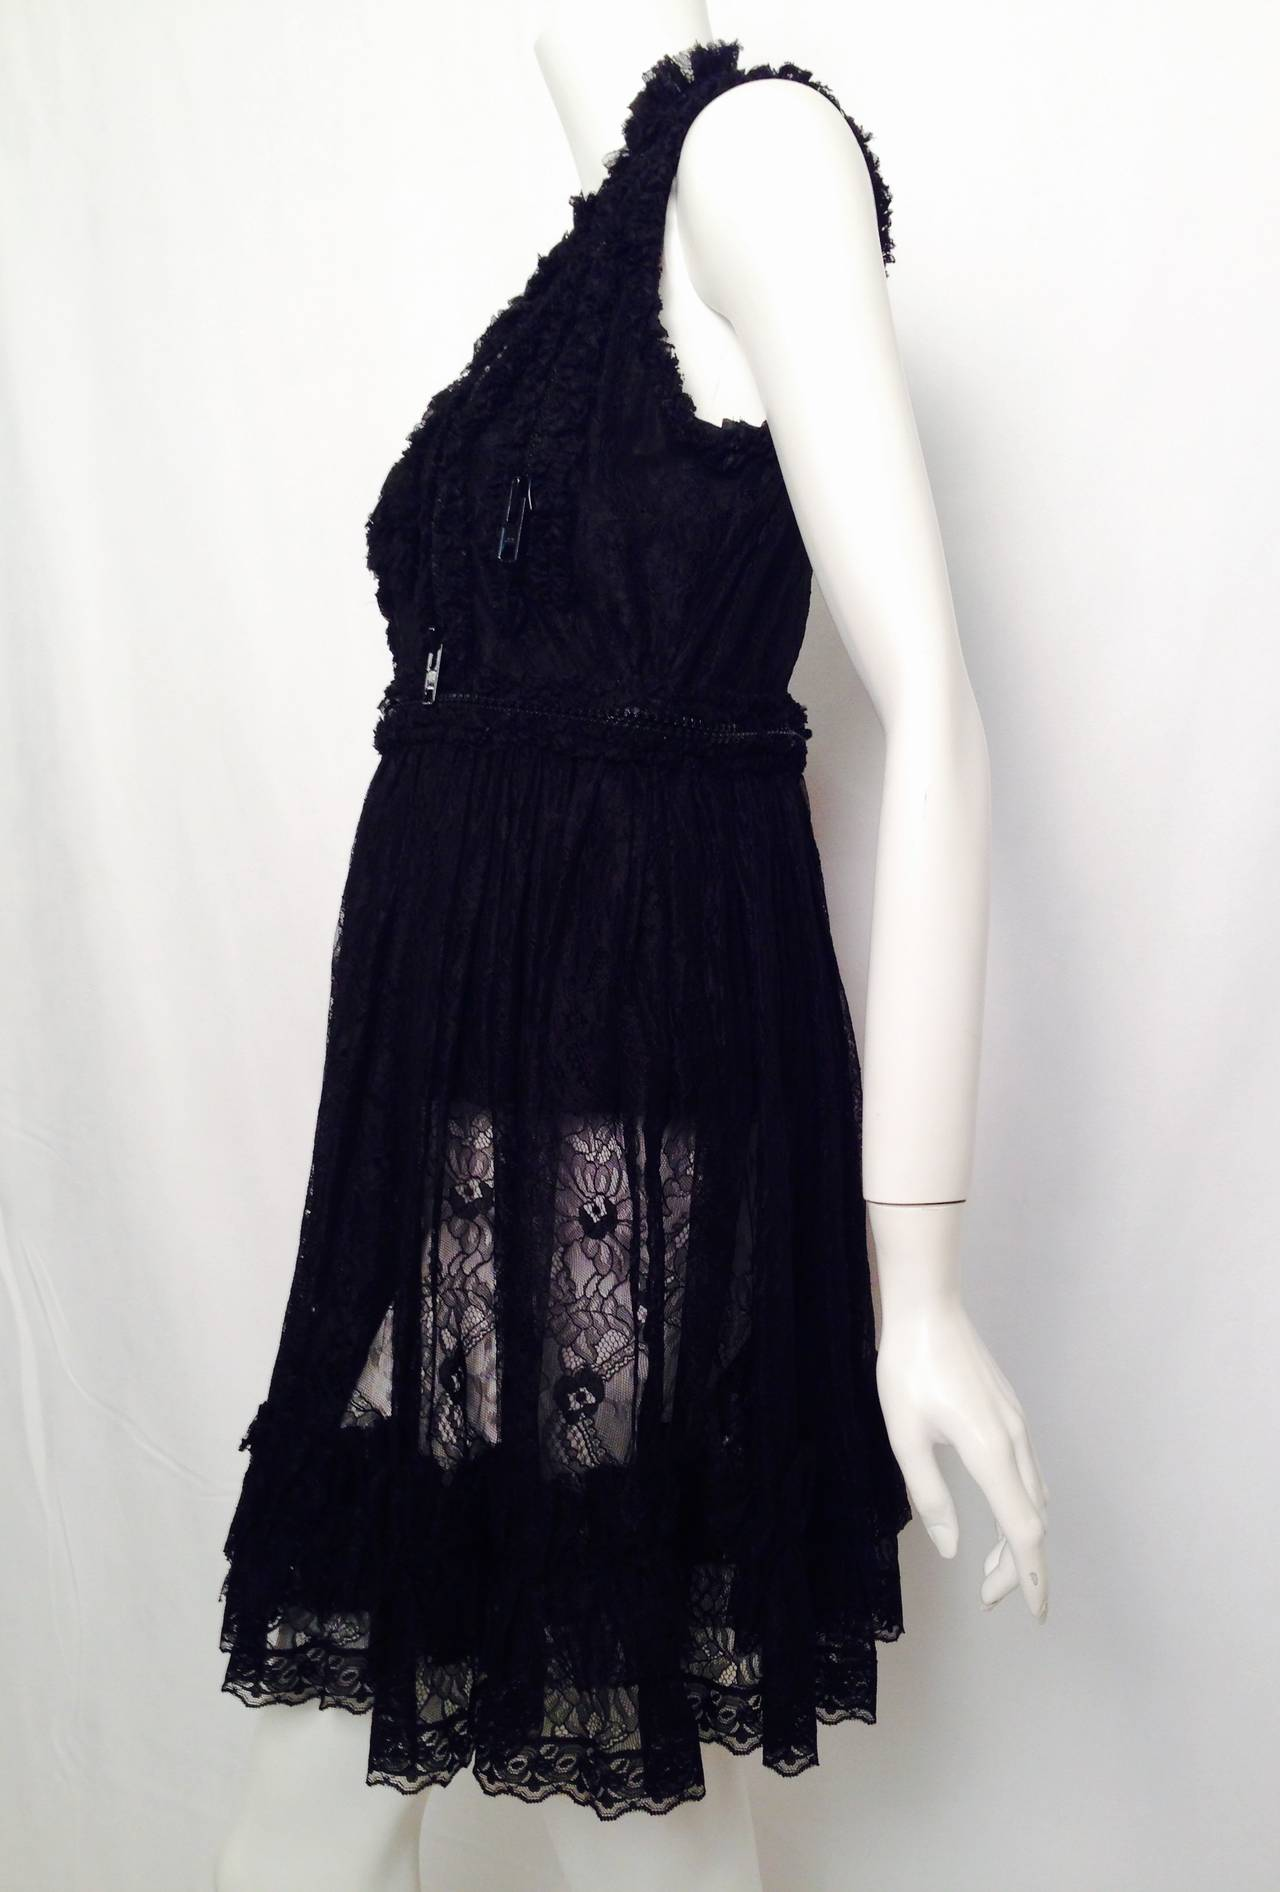 Givenchy Sleeveless Black Lace Baby Doll Dress With